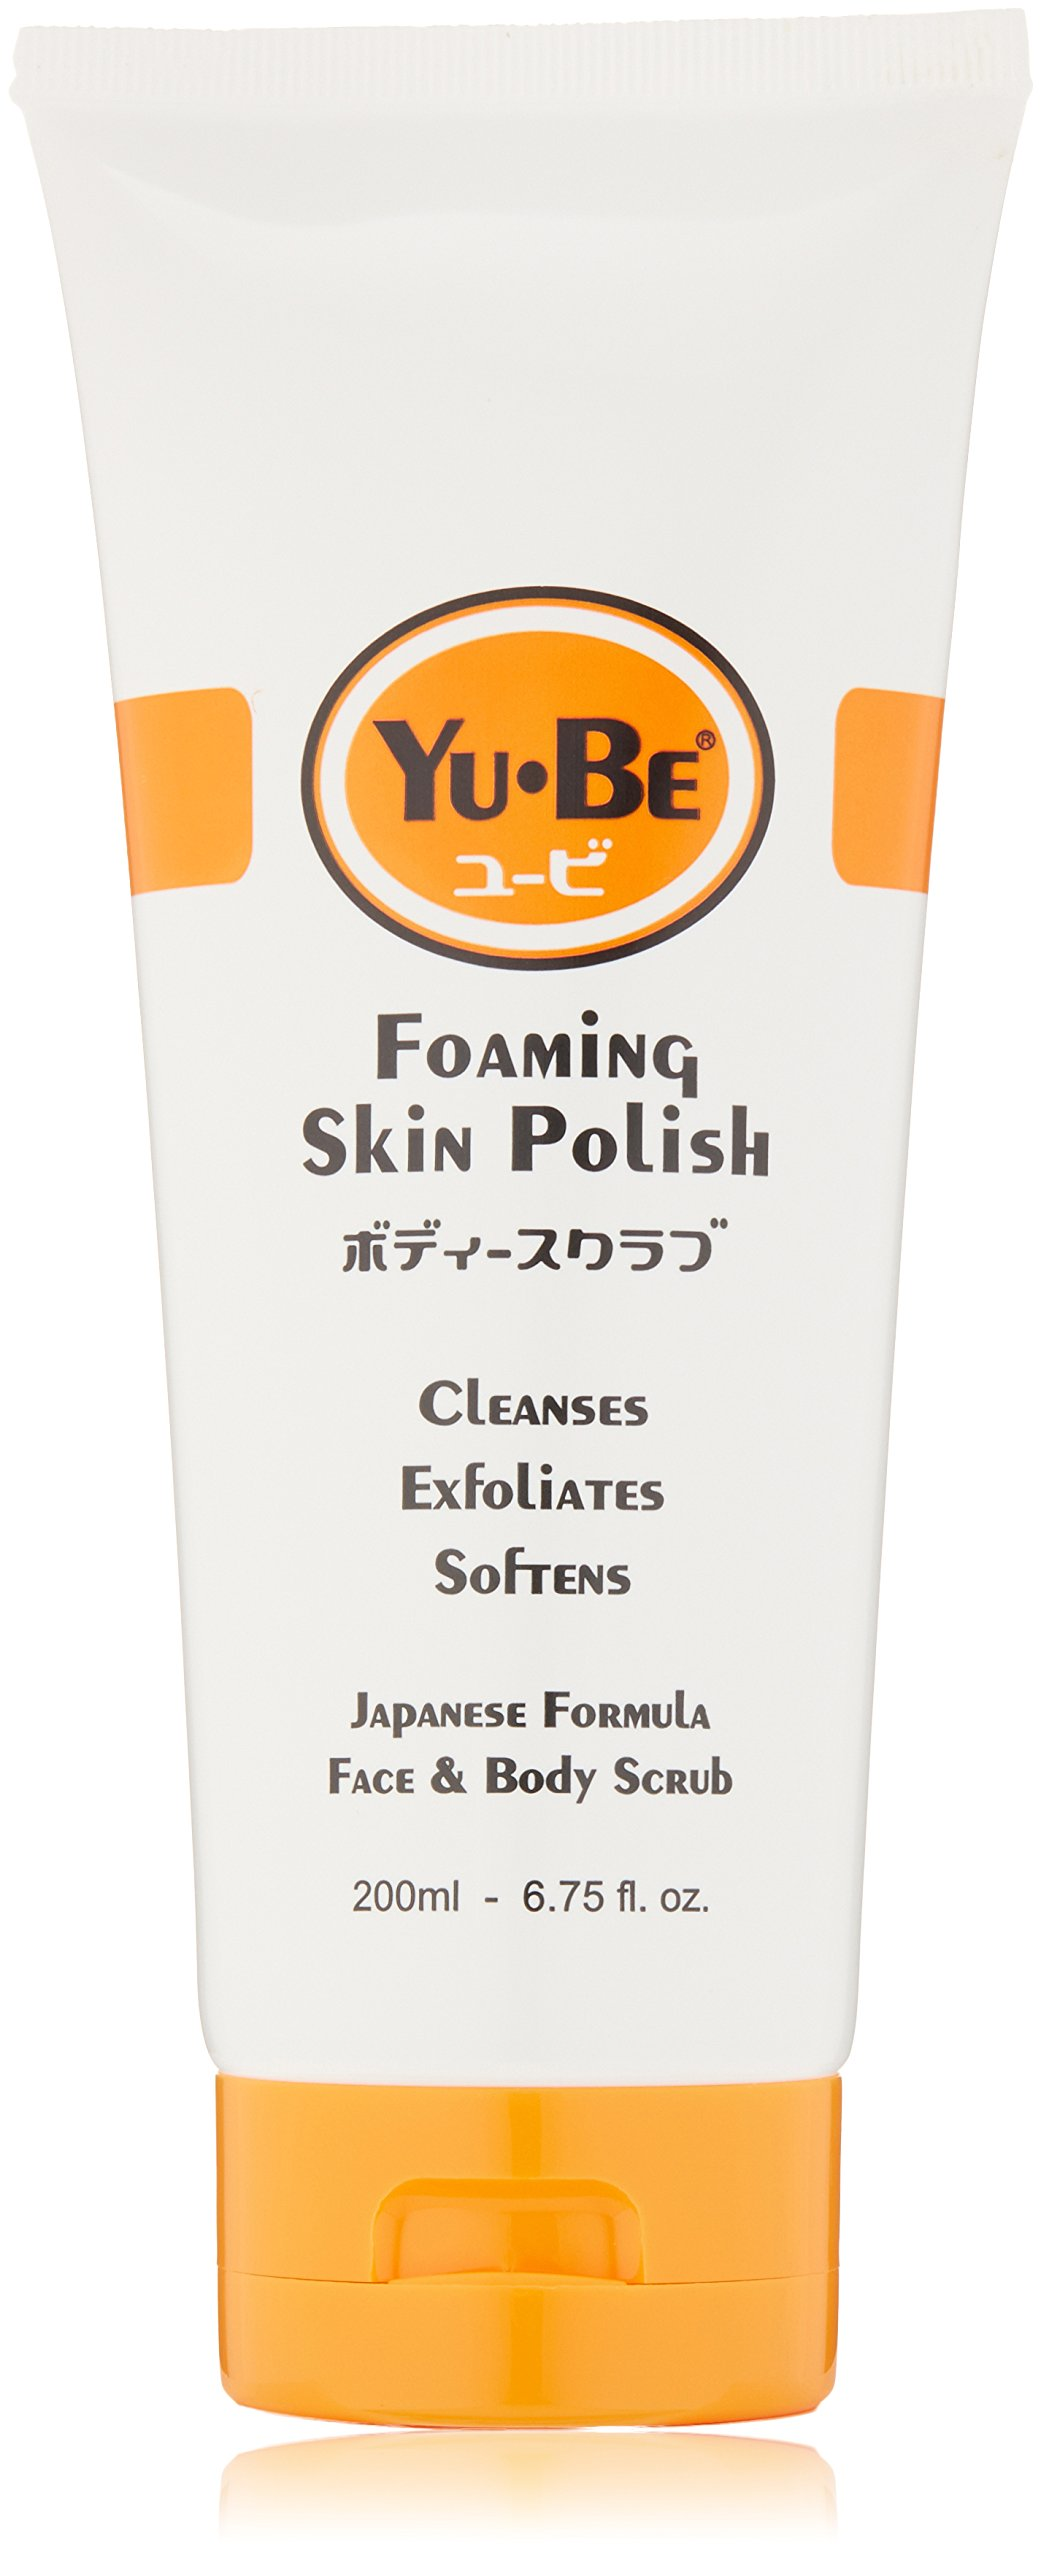 Yu-Be Foaming Skin Polish: Gently exfoliates using fine grains of rice bran & bamboo. Tones and balances with ginger root & ginseng. Soothes with green tea, geranium oil & camphor. Tube, 6.75 Fl Oz